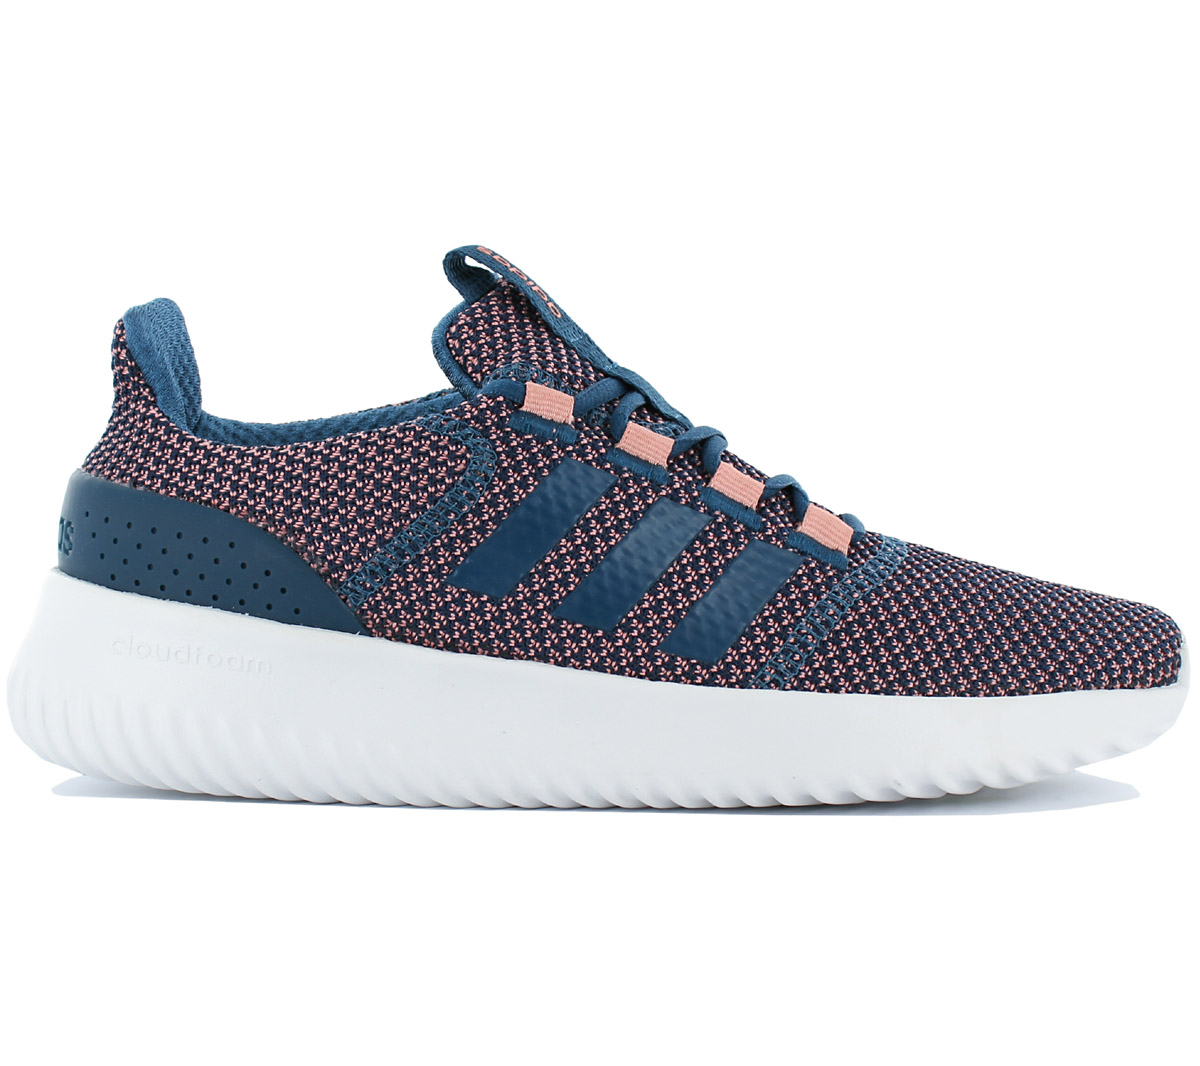 Details about Adidas Cloudfoam Ultimate Cf Sneaker Women's Shoes Sneakers Leisure BC0036 New